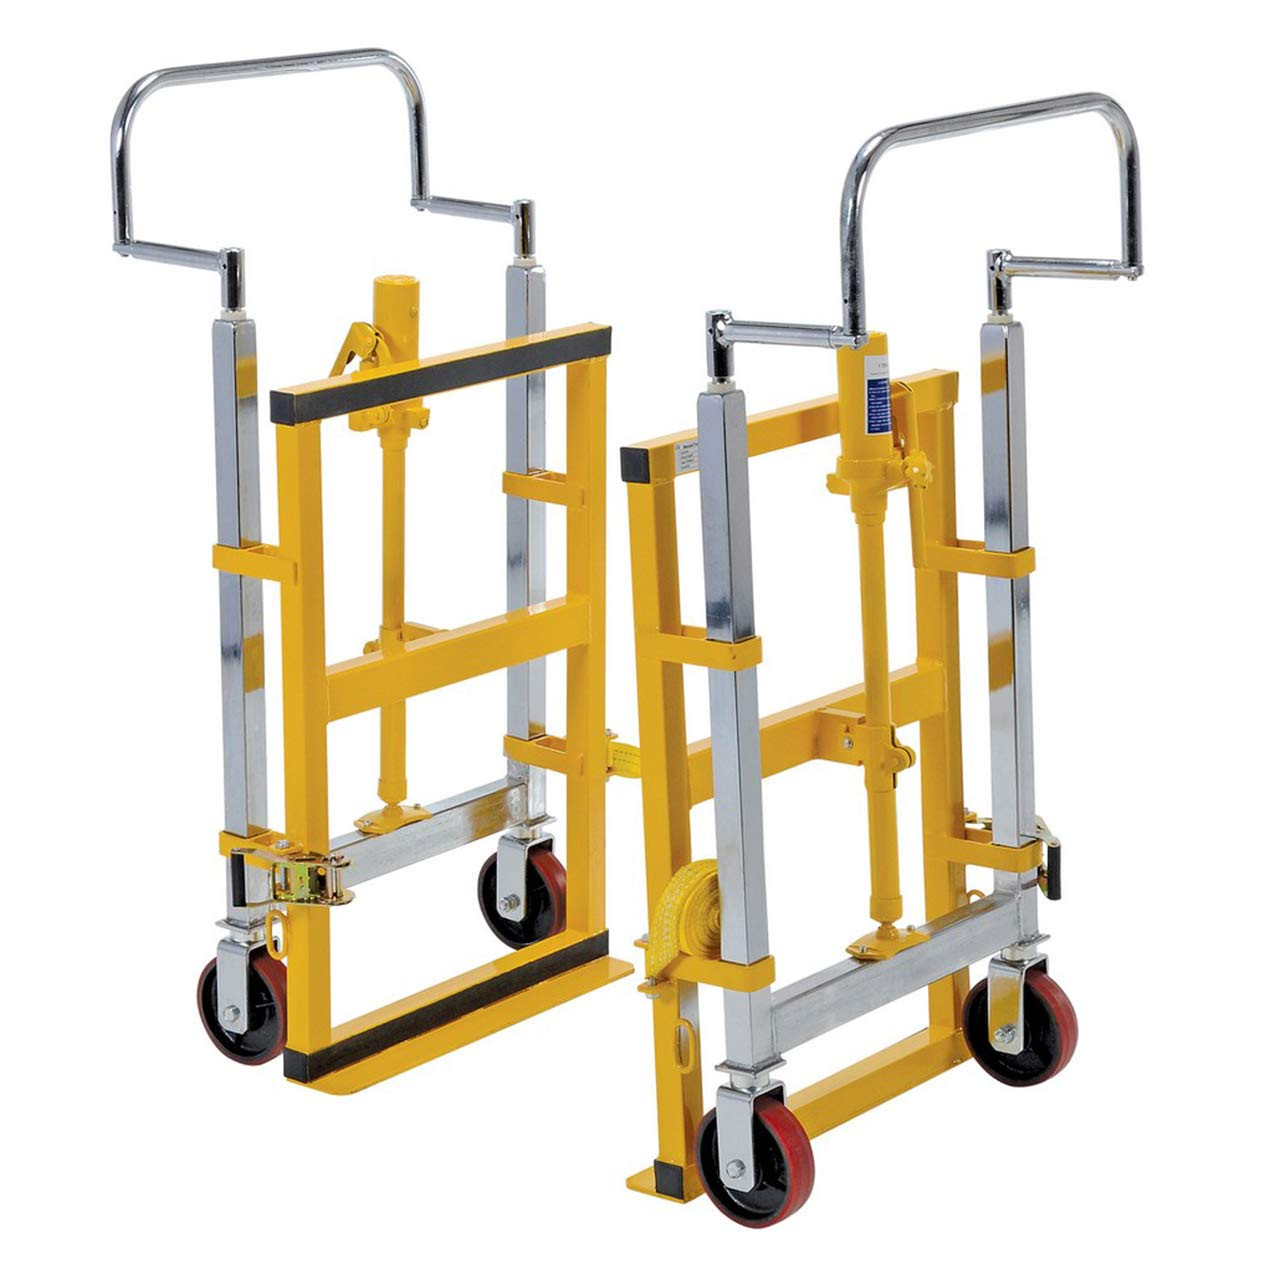 Furniture and Crate Mover